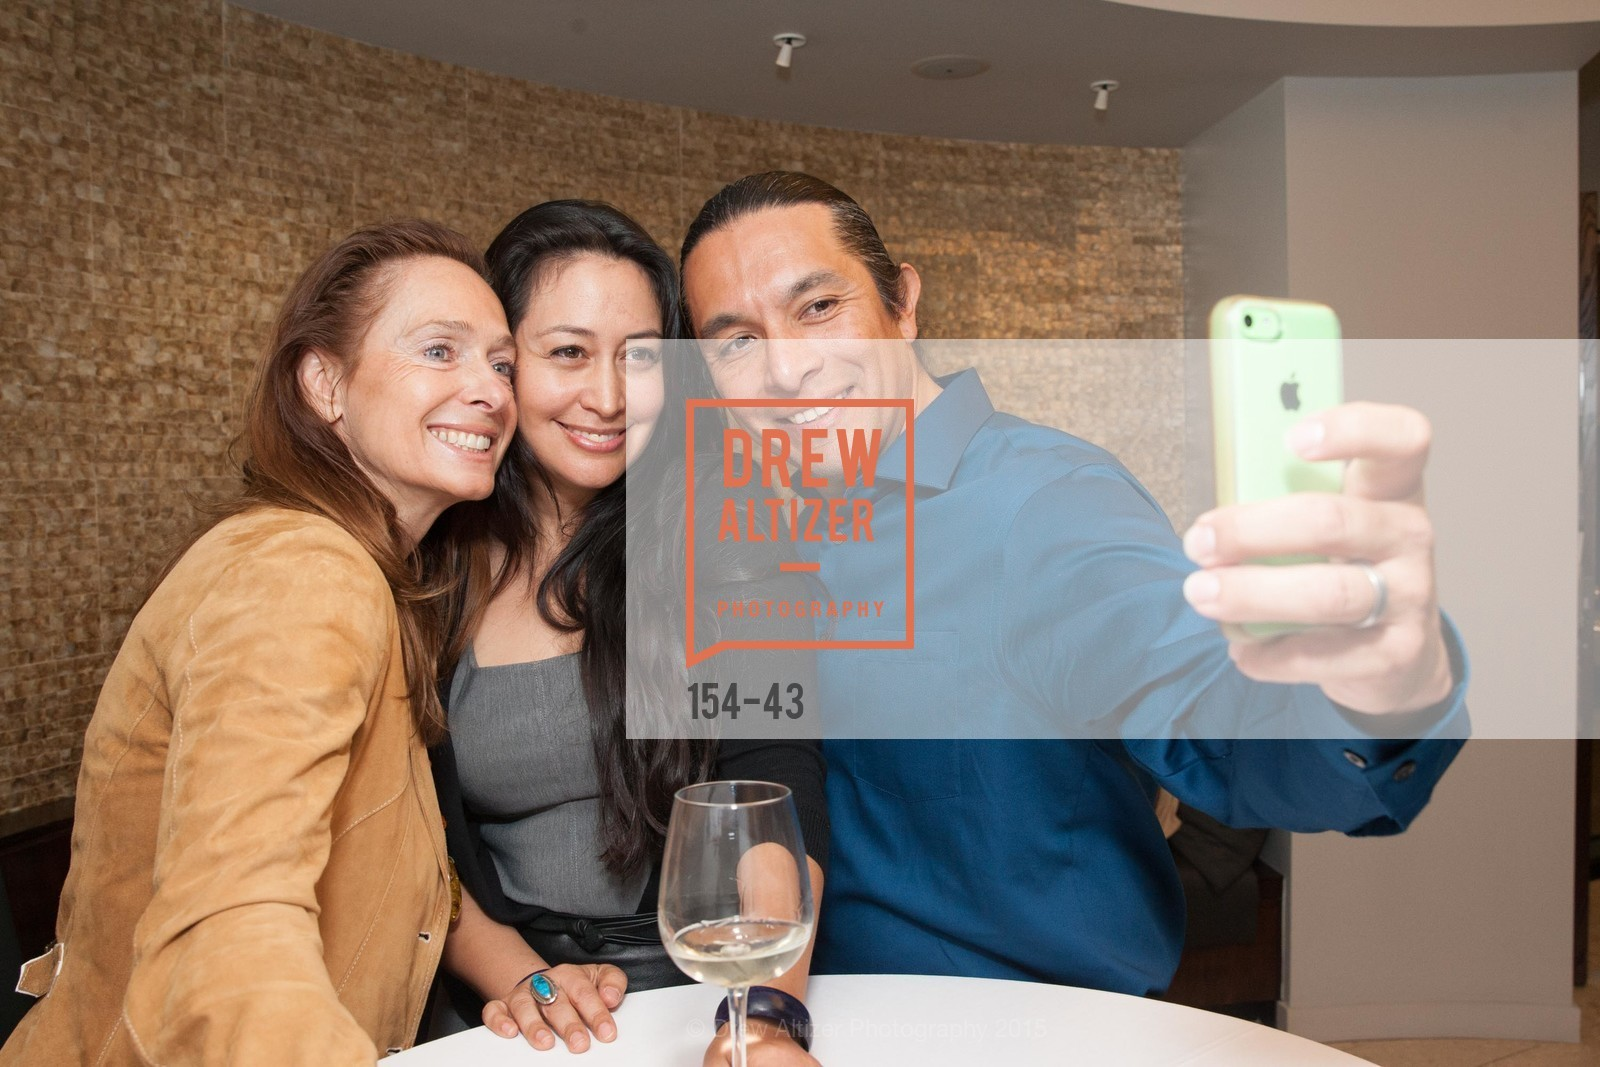 Elisabeth Thieriot, Sara Moncada, Eddie Madril, EPI CENTER MedSpa Anniversary and Launch of REPLETE, Epi Center MedSpa, April 21st, 2015,Drew Altizer, Drew Altizer Photography, full-service agency, private events, San Francisco photographer, photographer california